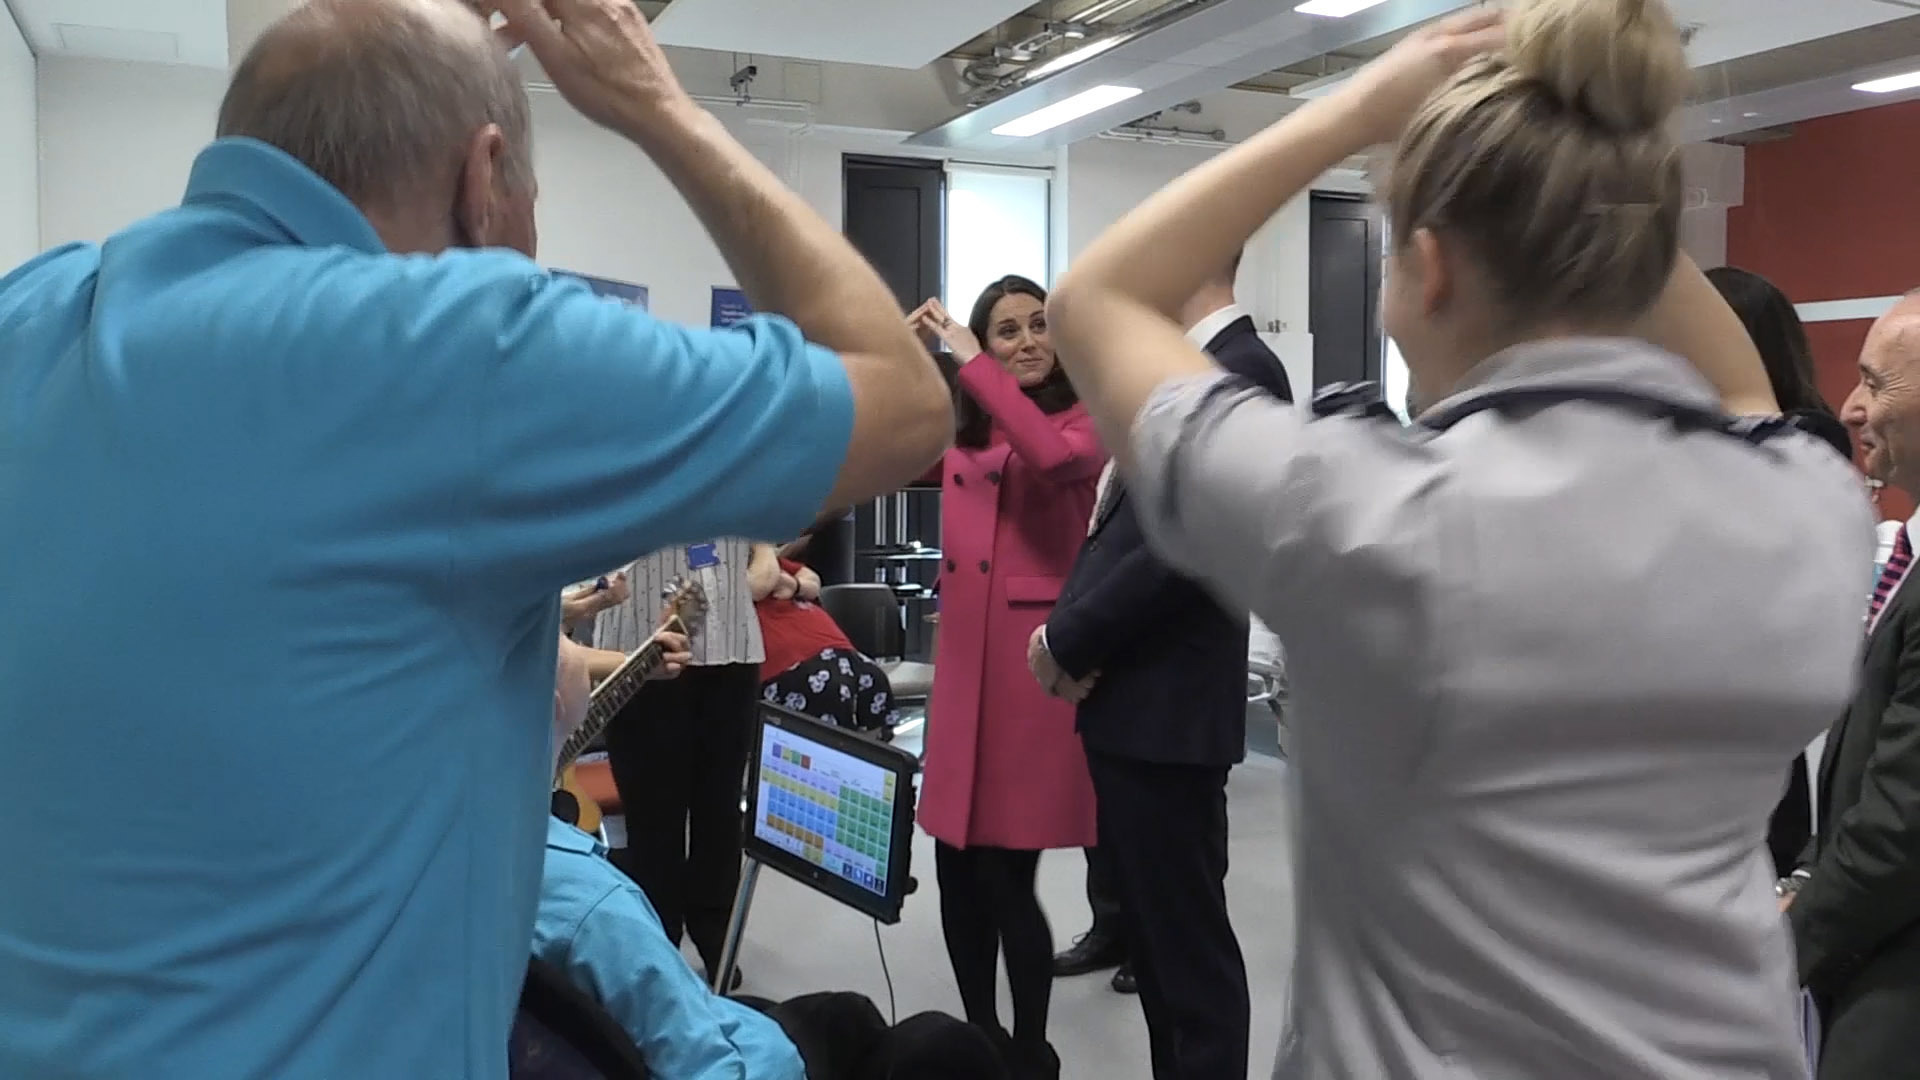 The Duke and Duchess of Cambridge 'wiggle' with staff as they tour the Science and Health Building at Coventry University (Phil Barnett/PA)